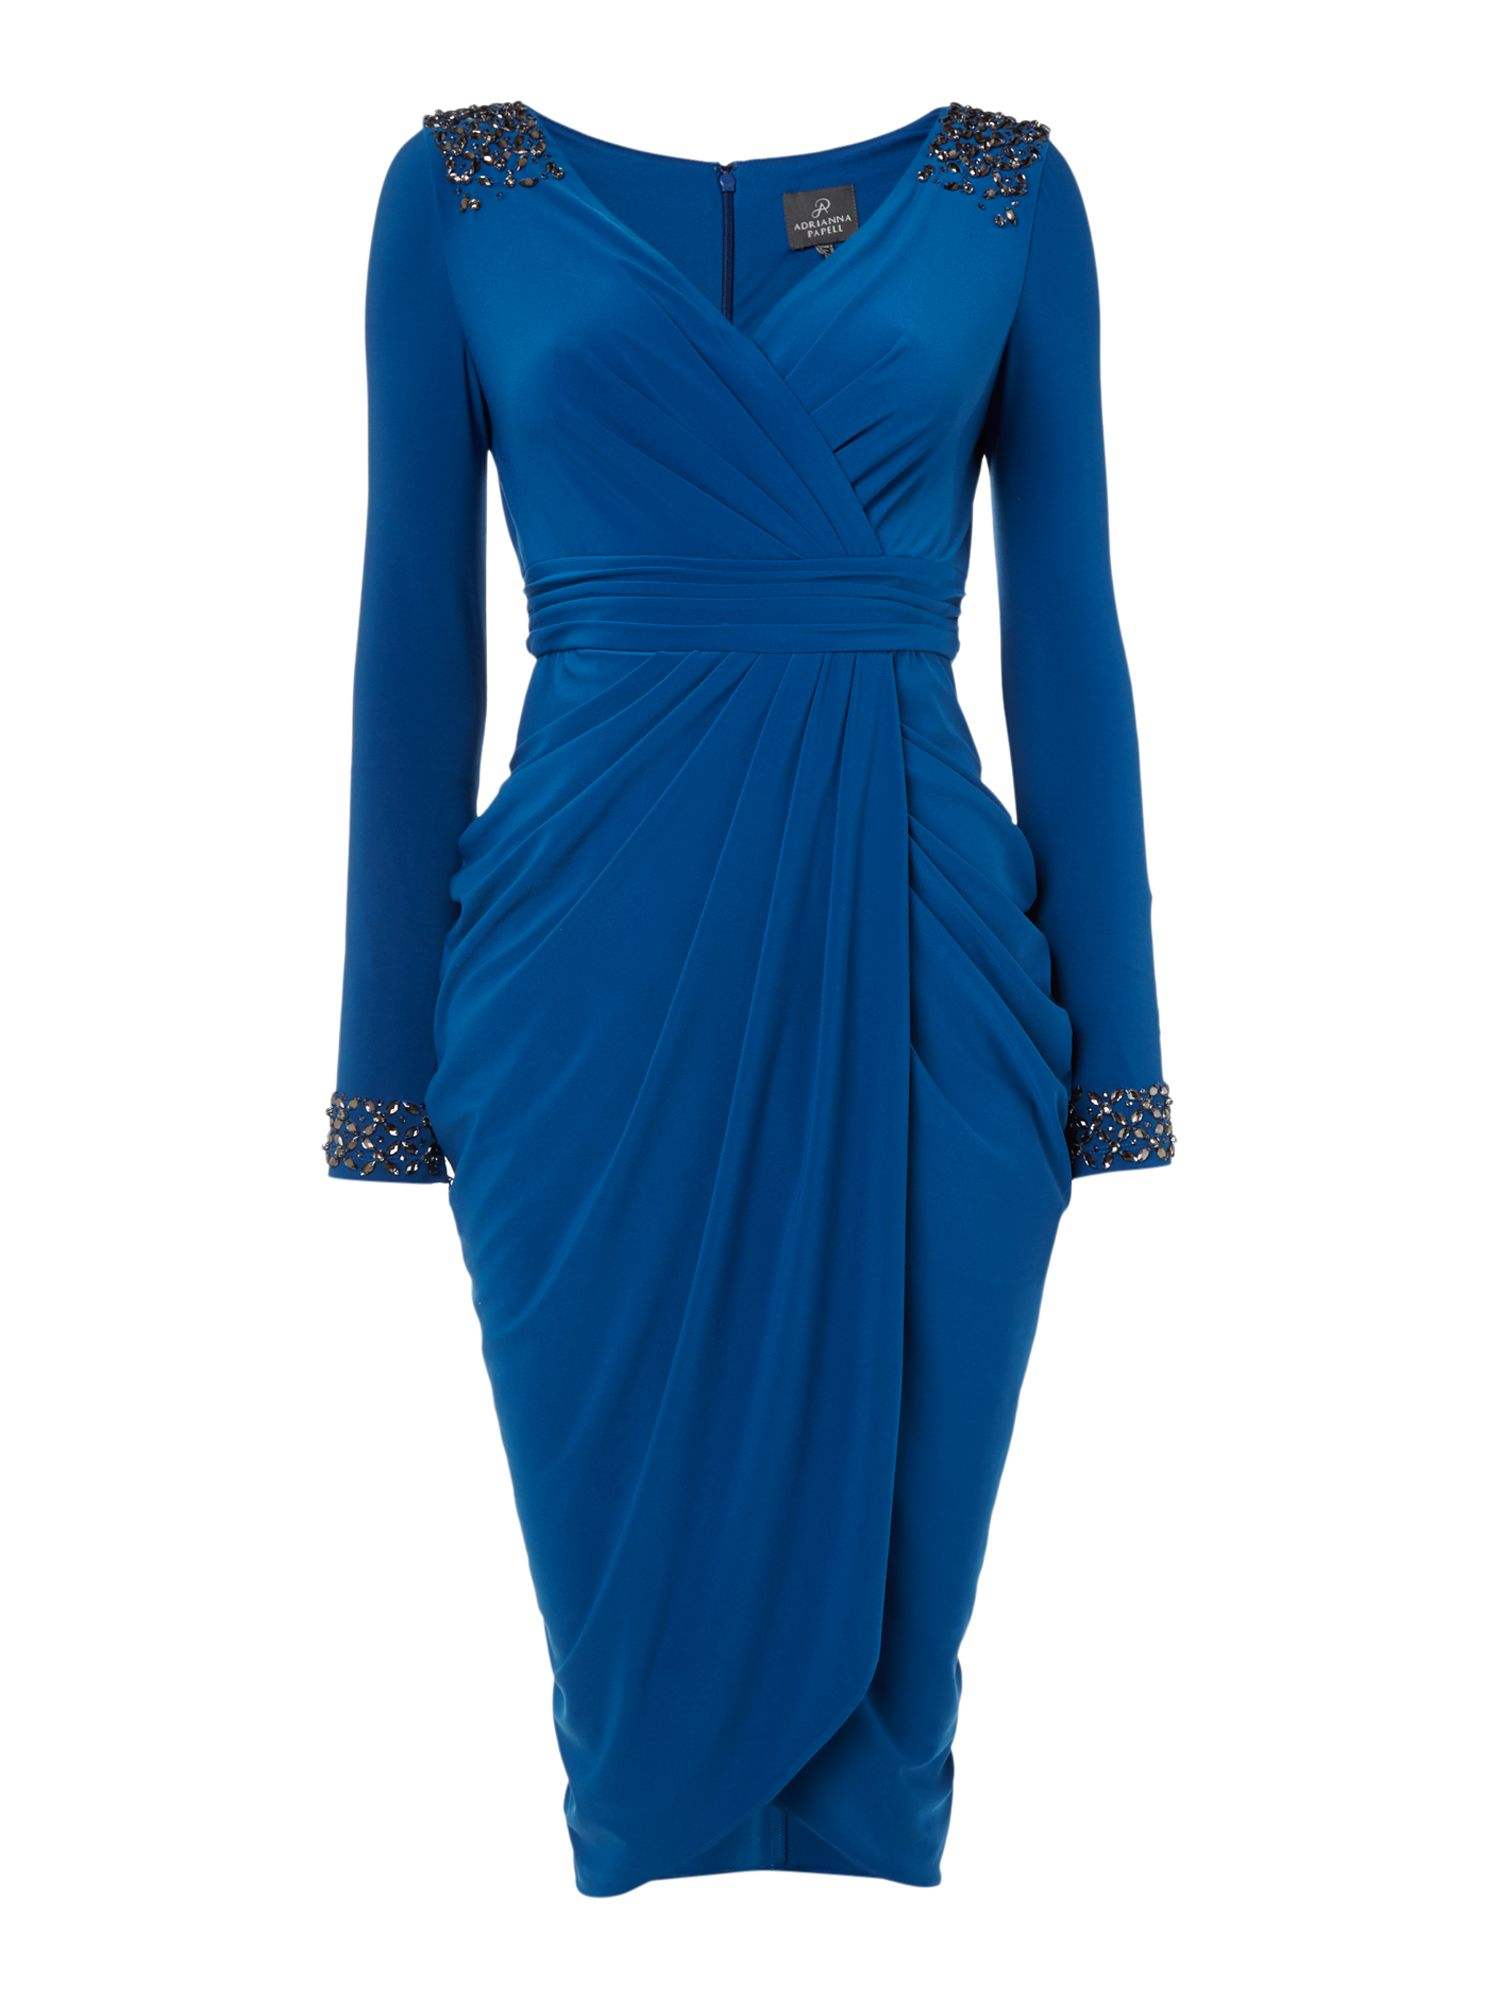 Adrianna Papell Beaded Cuff Wrap Dress, Sapphire